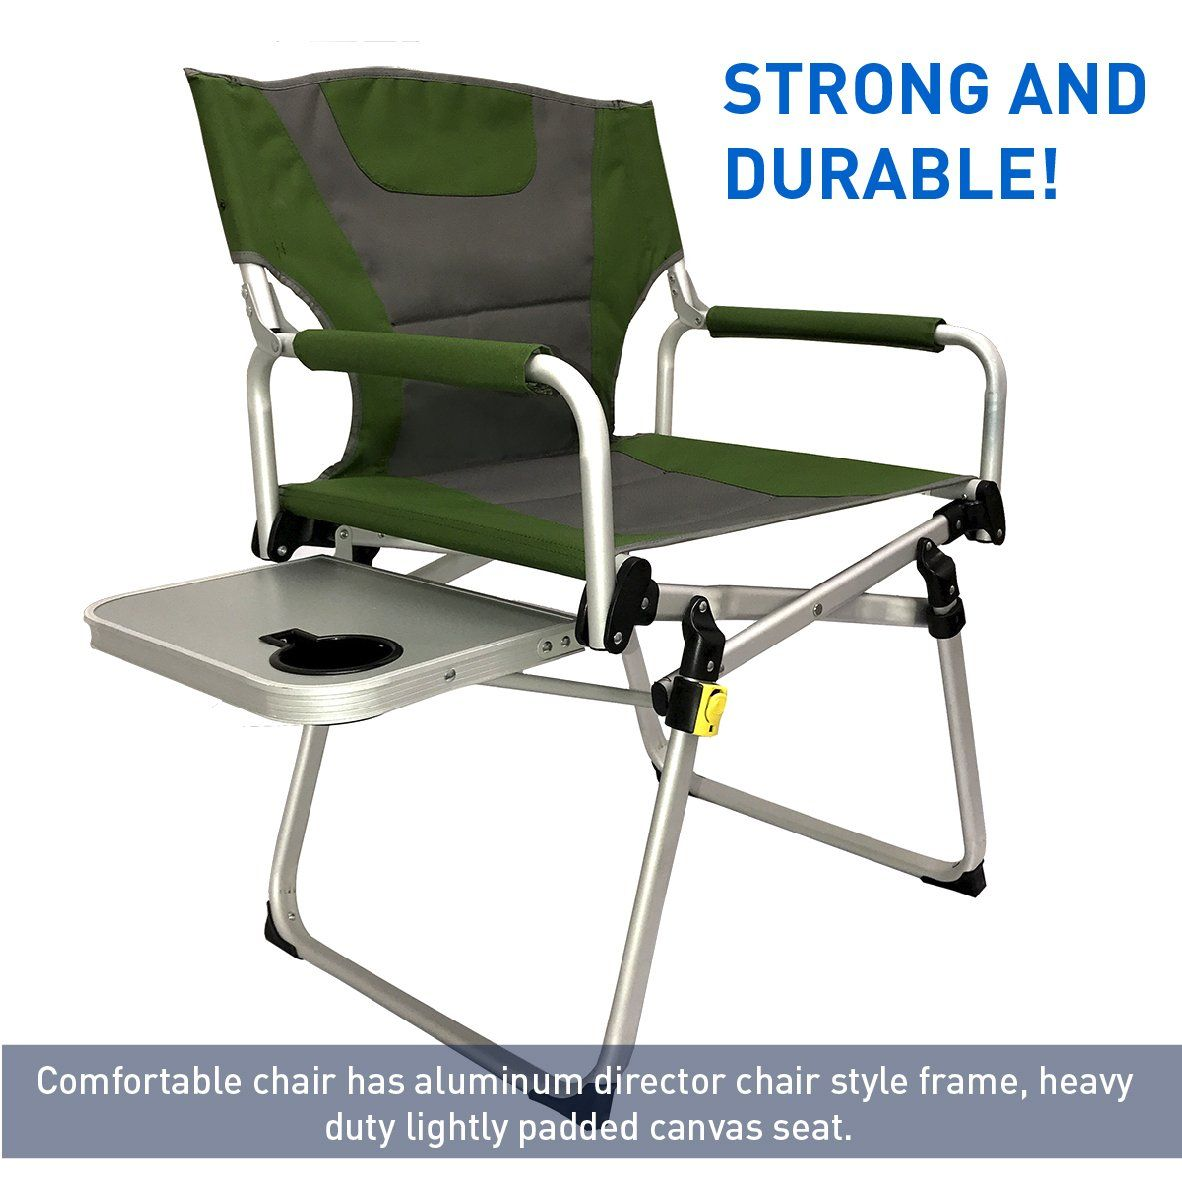 Folding Camp Chair With Side Table Directors Chair â Camping Chair â Folding Sports Chair With